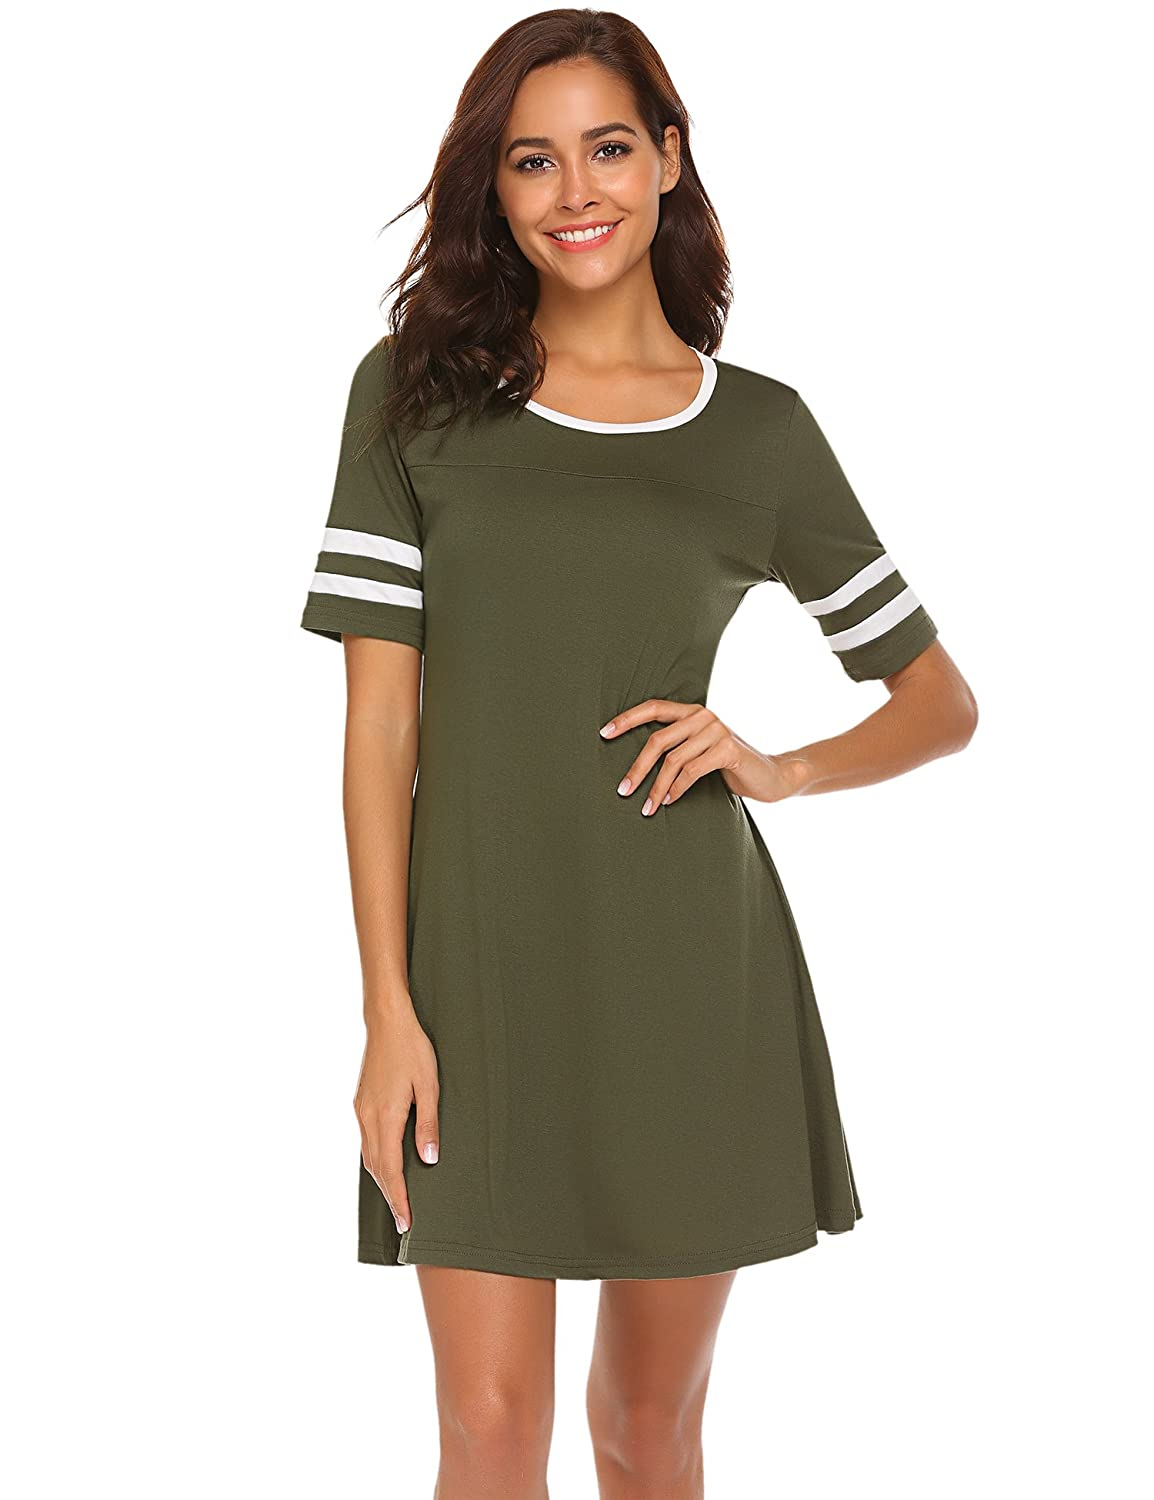 Ours Womens Summer Casual Stripes Short Sleeve Swing T Shirt Dress